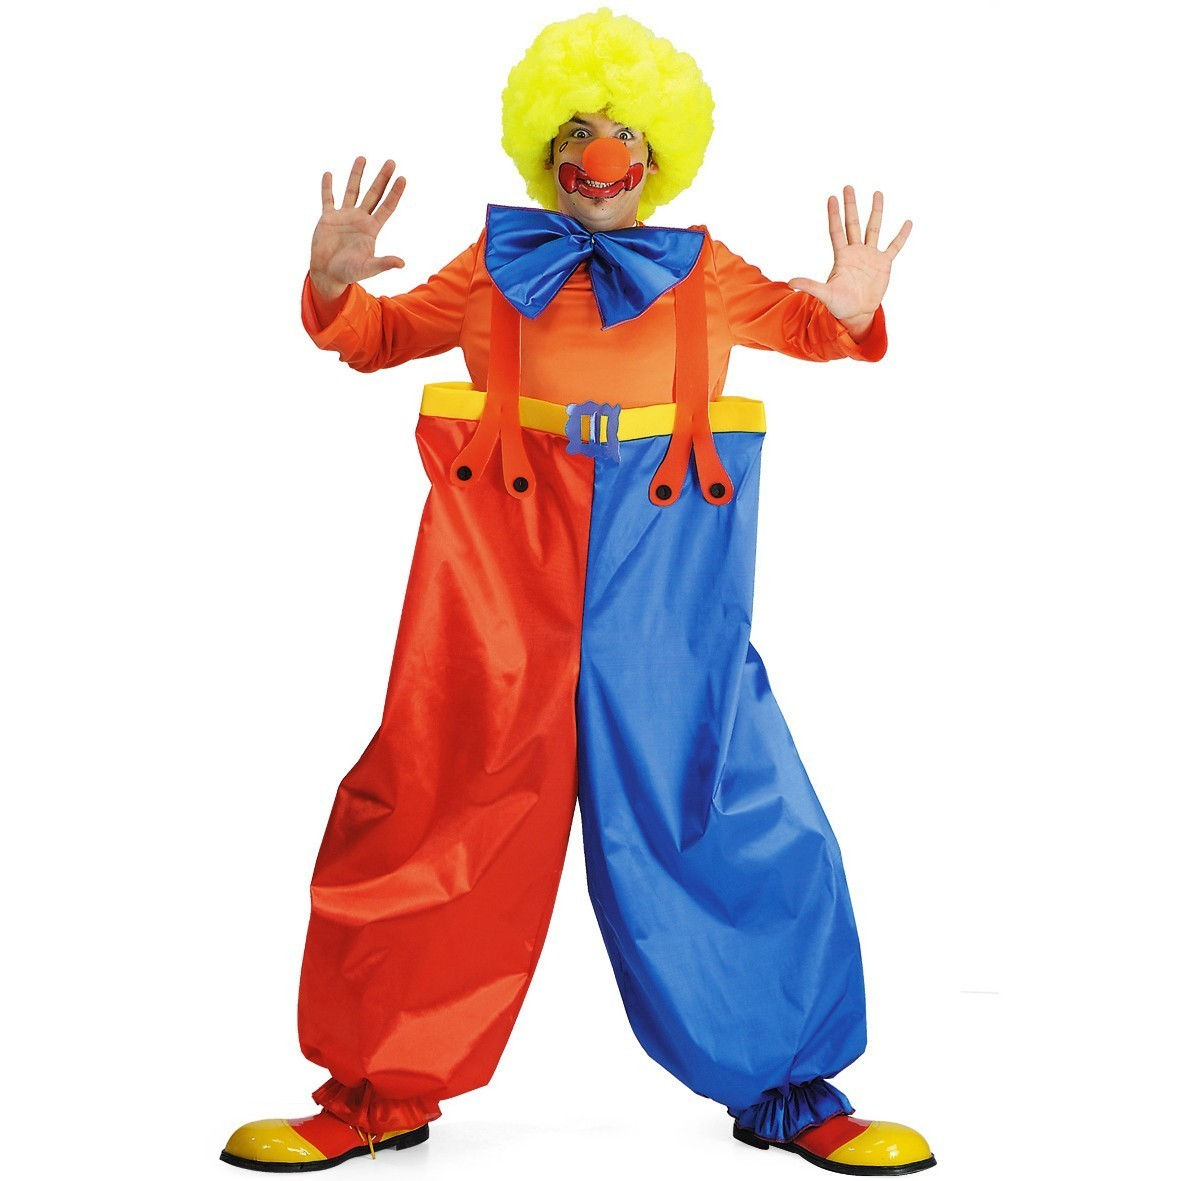 Costum clown adulti cu peruca si nas